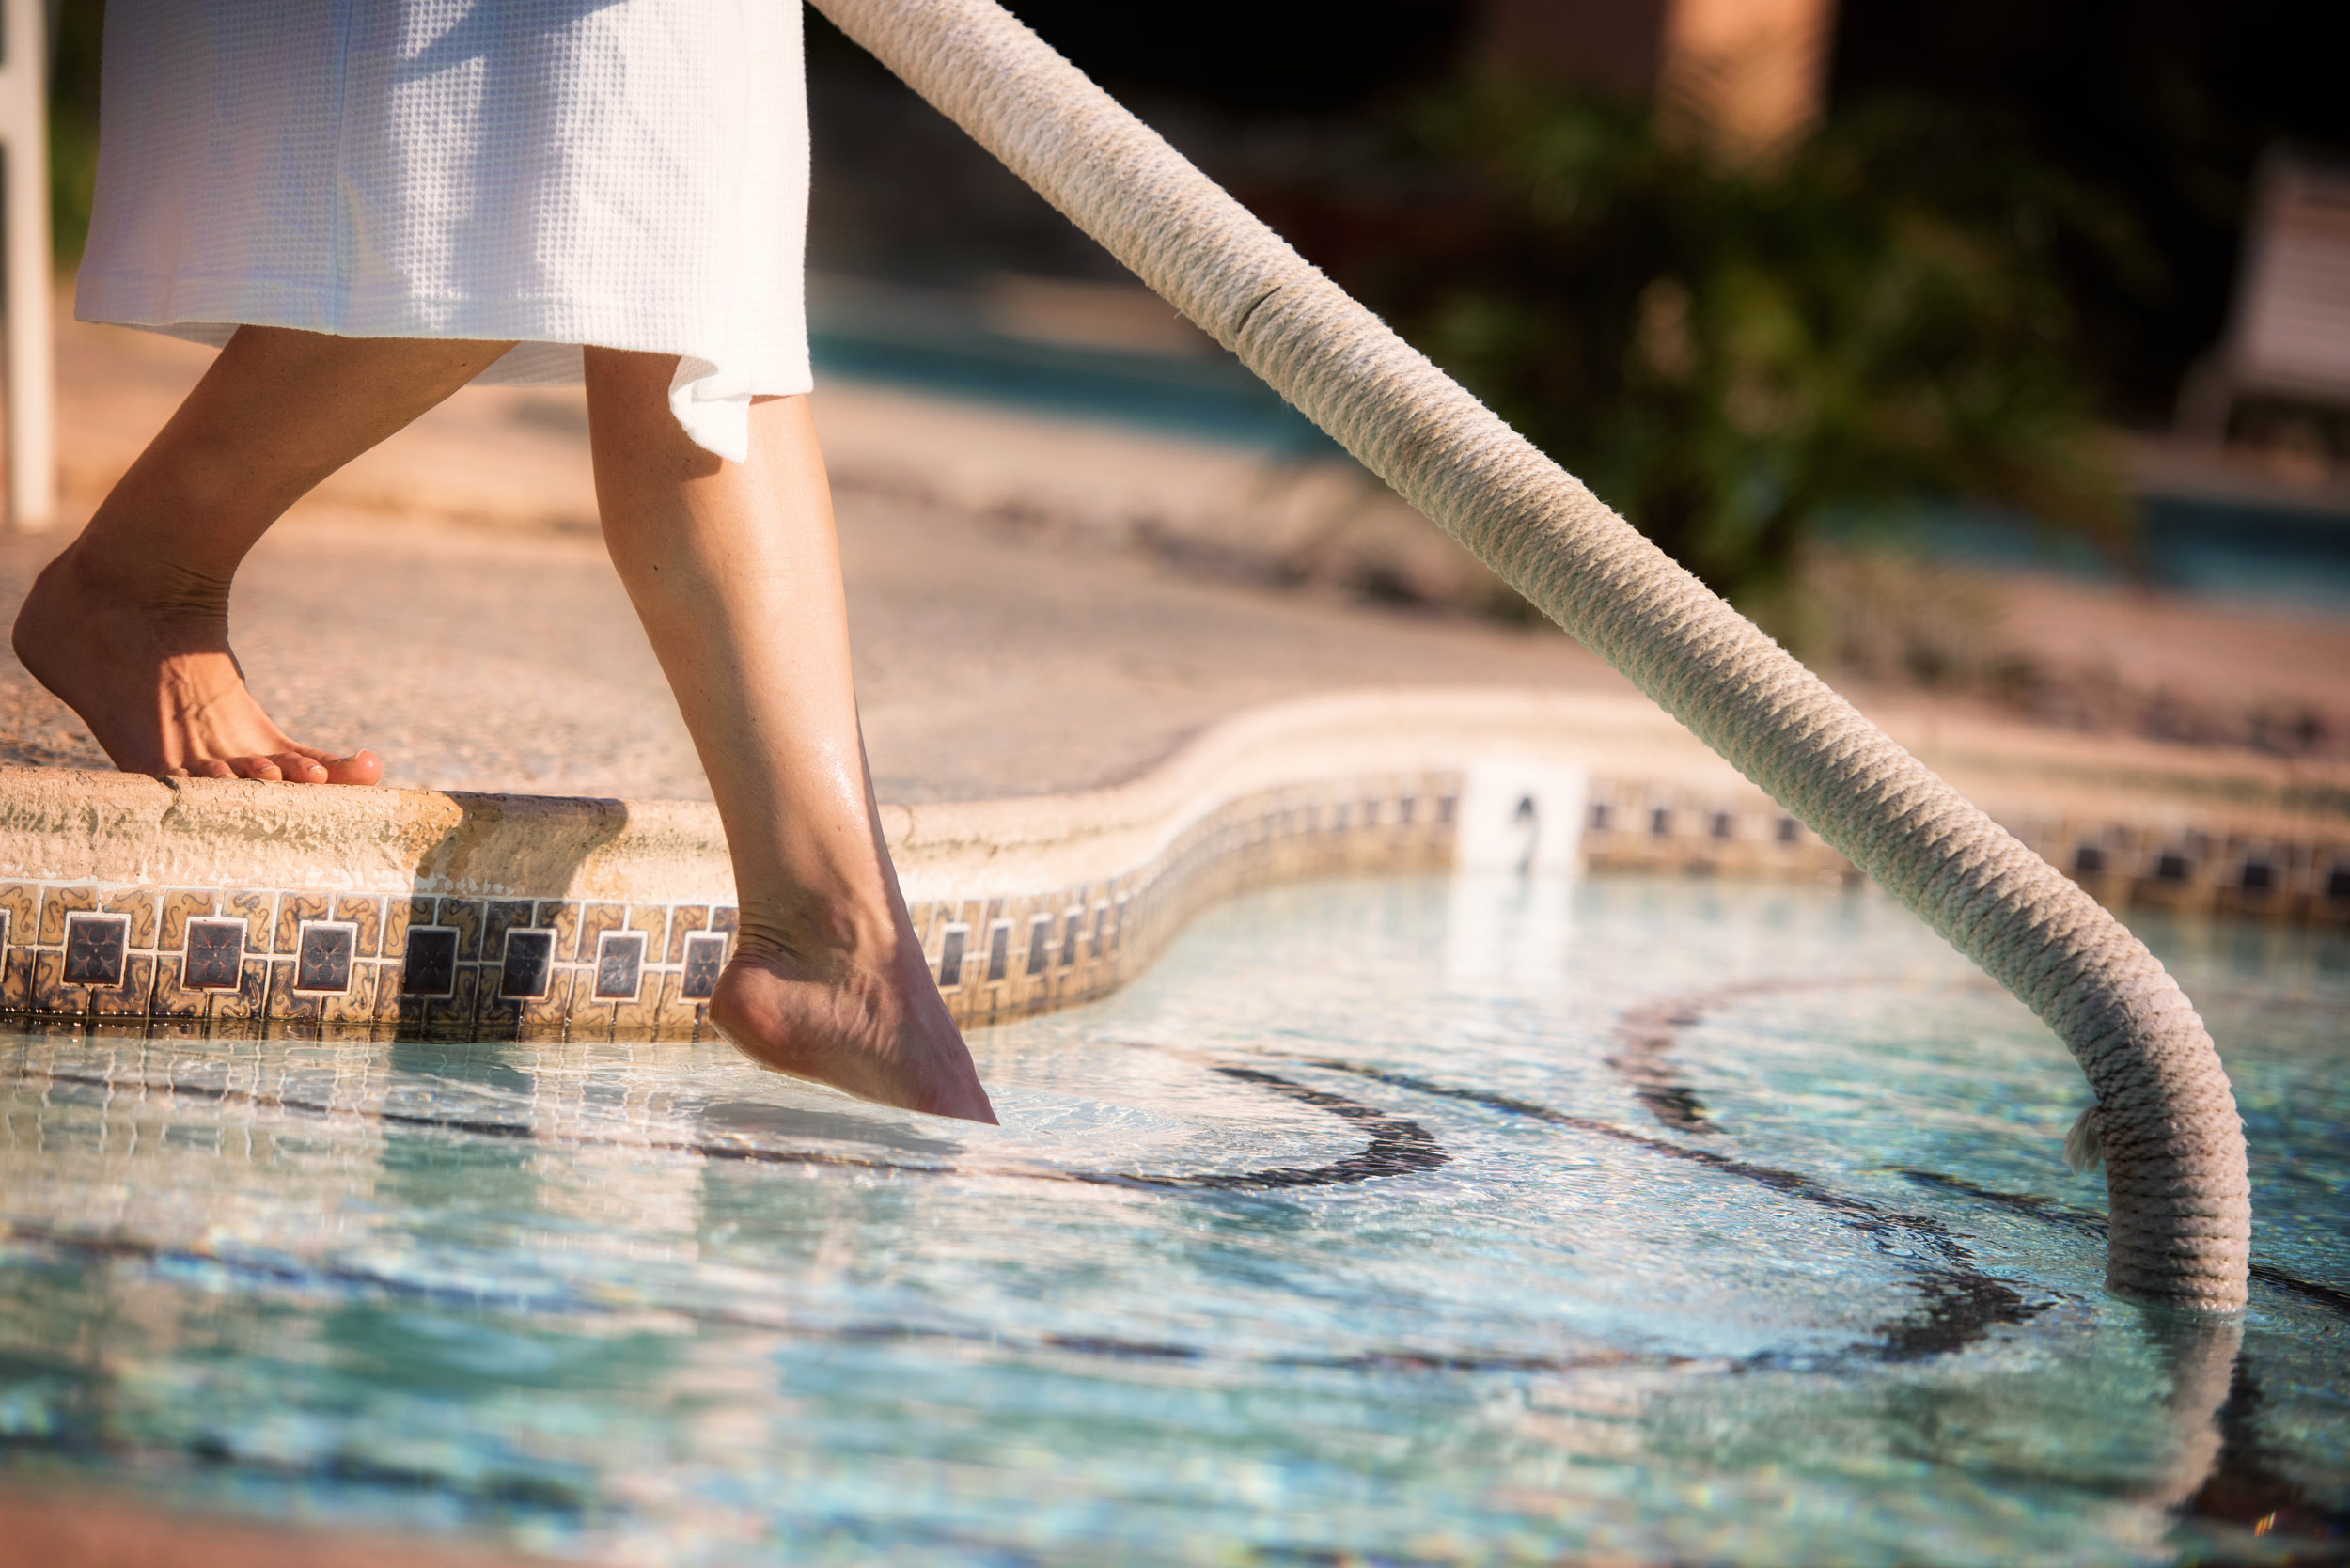 THE SPA METHOD - Make the Sky Valley Spa Method a part of your daily routine. Start with a 15-minute detoxifying dip in our 104-degree tub, then relax in a warm pool or sauna for an additional 30 minutes. Finally, cool down with a massaging shower for 5 minutes.